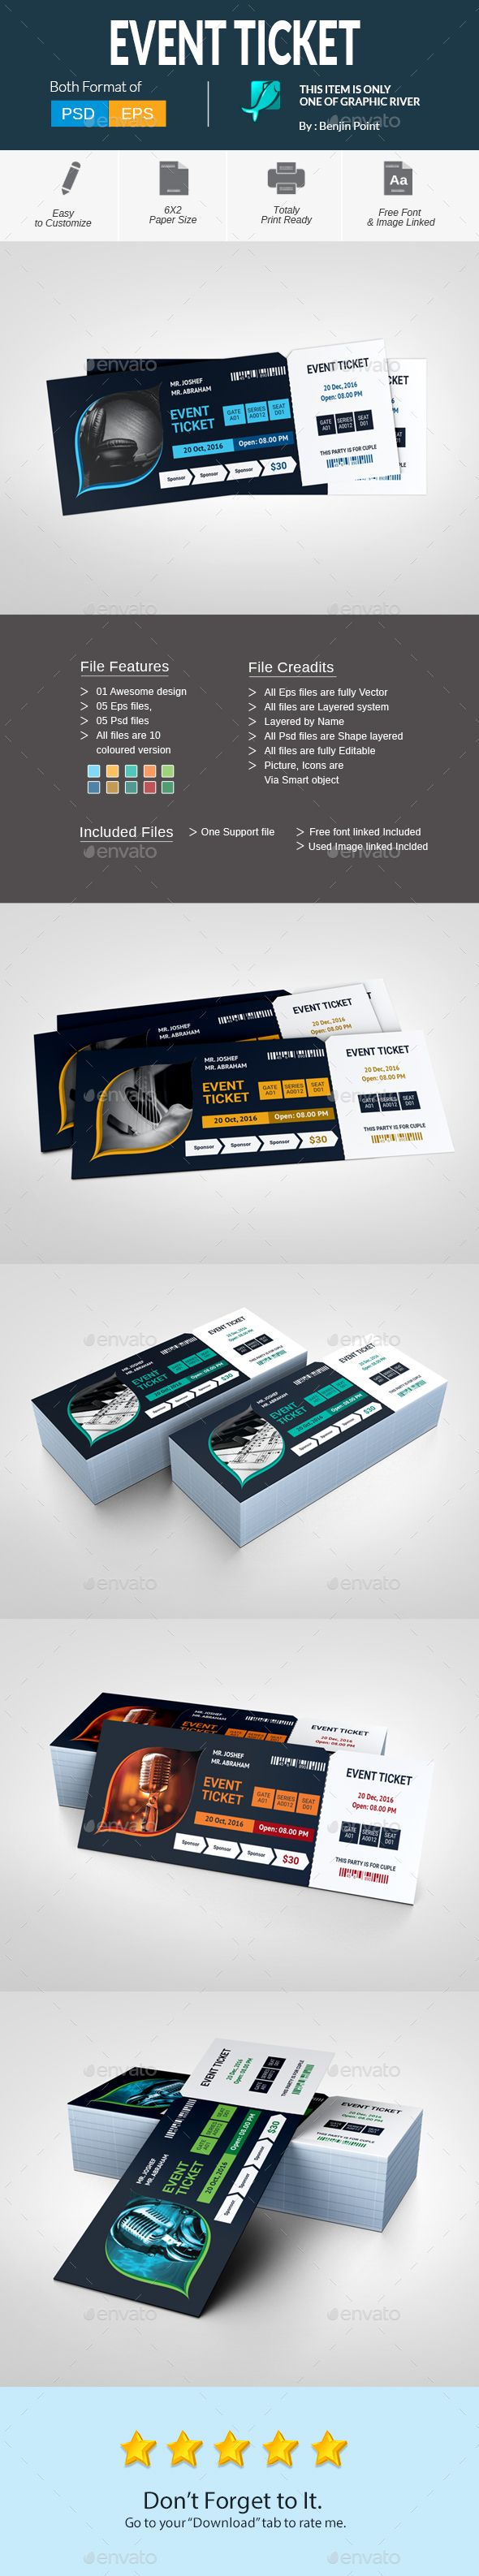 Event Ticket — Photoshop PSD #three color #conference • Download ➝ https://graphicriver.net/item/event-ticket/19015624?ref=pxcr